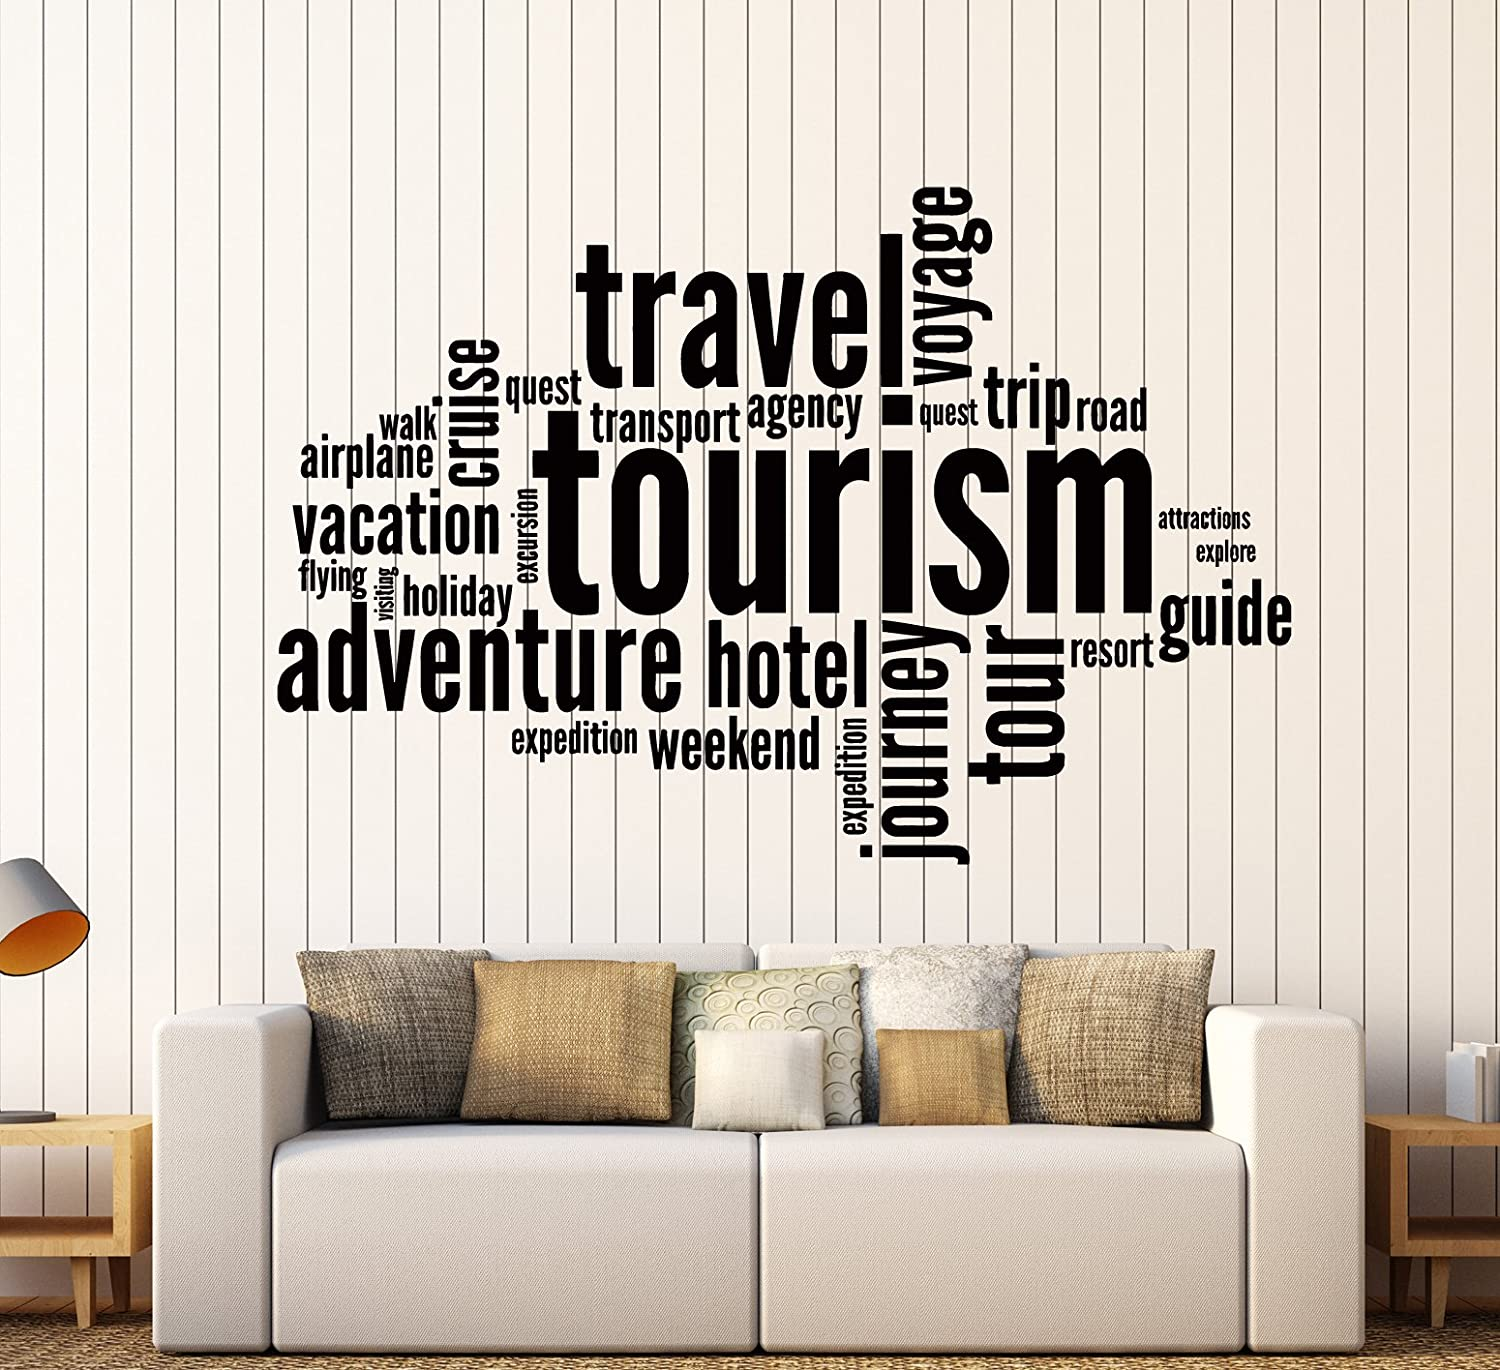 amazoncom wall stickers vinyl decal tourism travel adventure quote words inspire message z1349i m 225 in x 35 in home kitchen